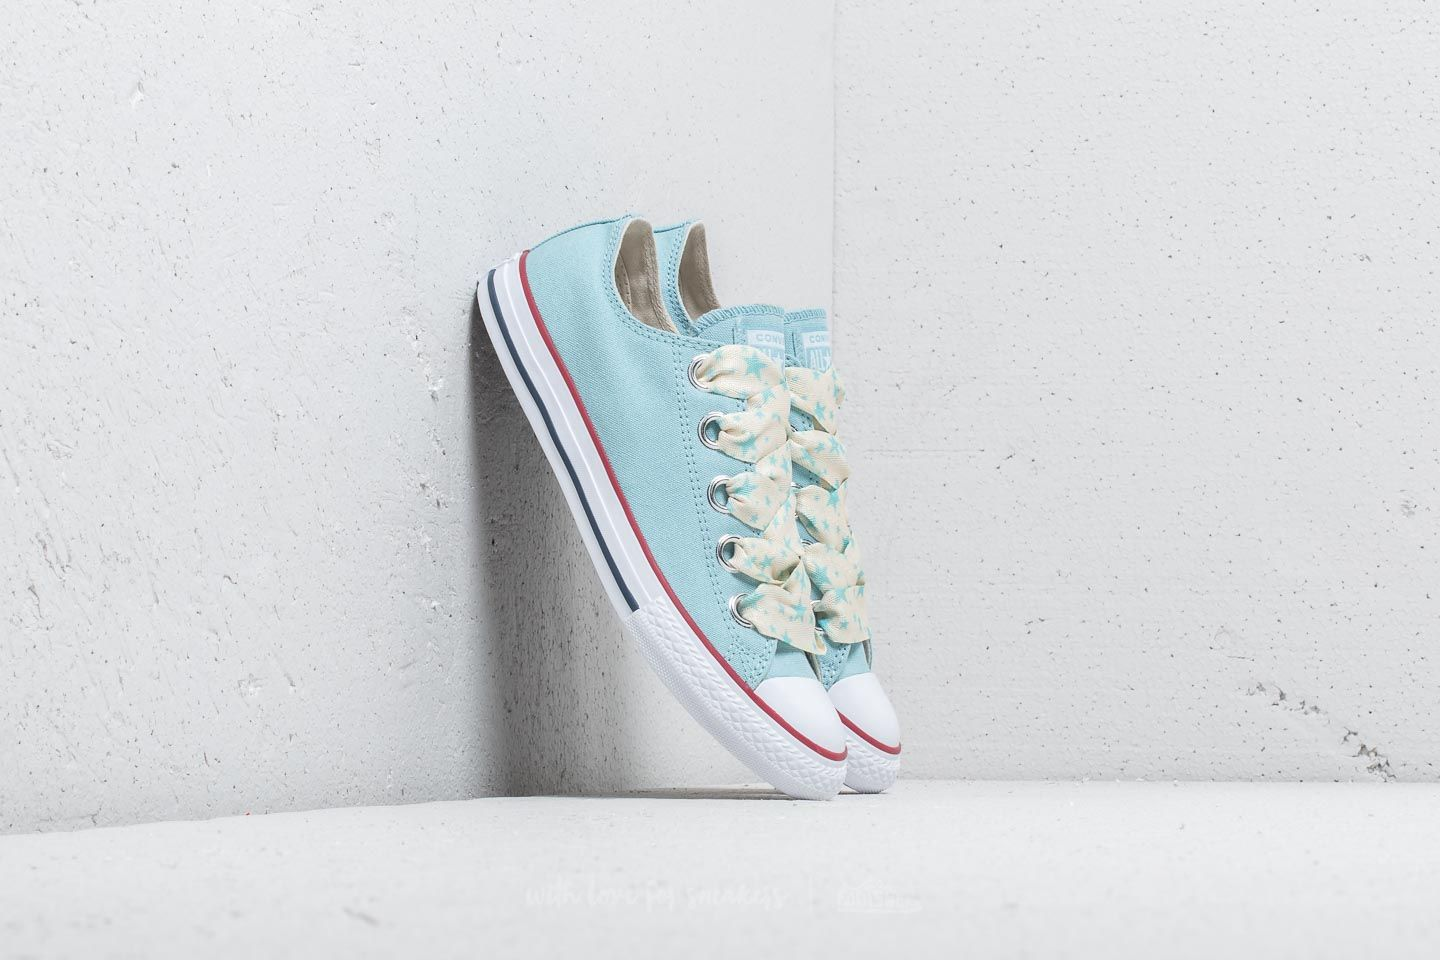 Converse Chuck Taylor All Star Big Eyelet Ox Ocean Bliss  Driftwood  White  at a b1e910da02